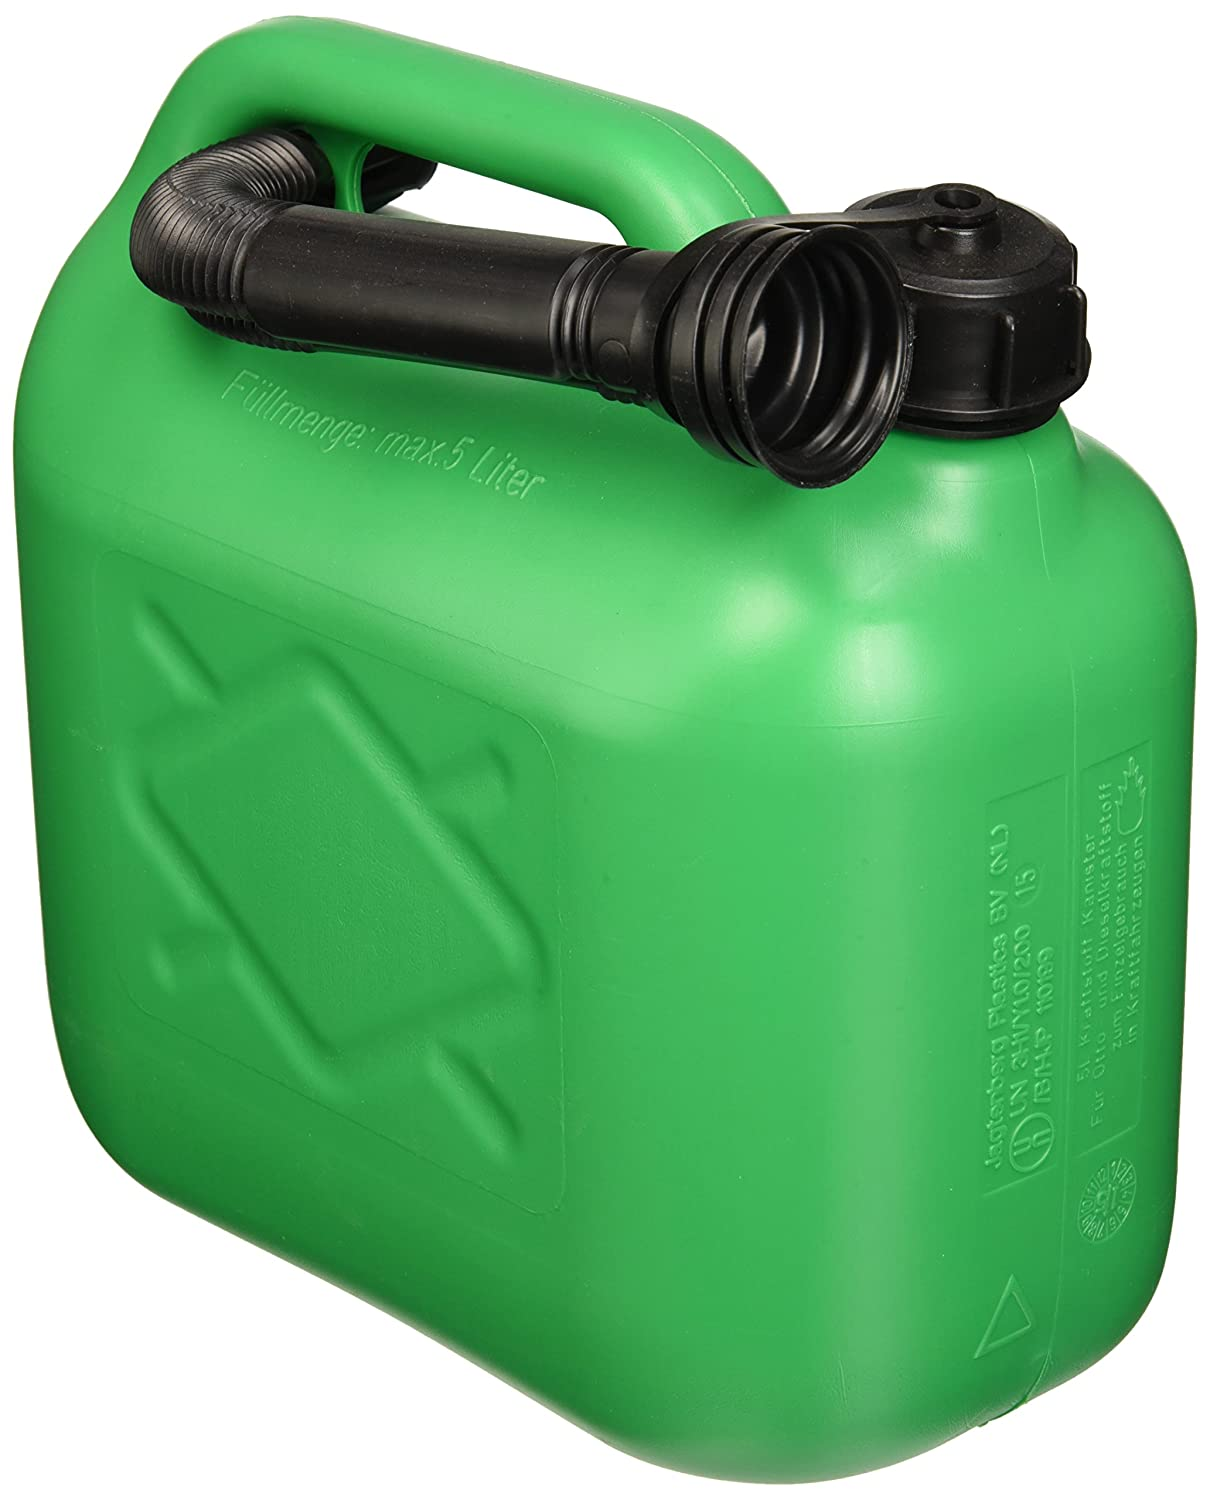 All Ride Fuel Jerry Can 5 Litre Green (Unleaded) 871125200937